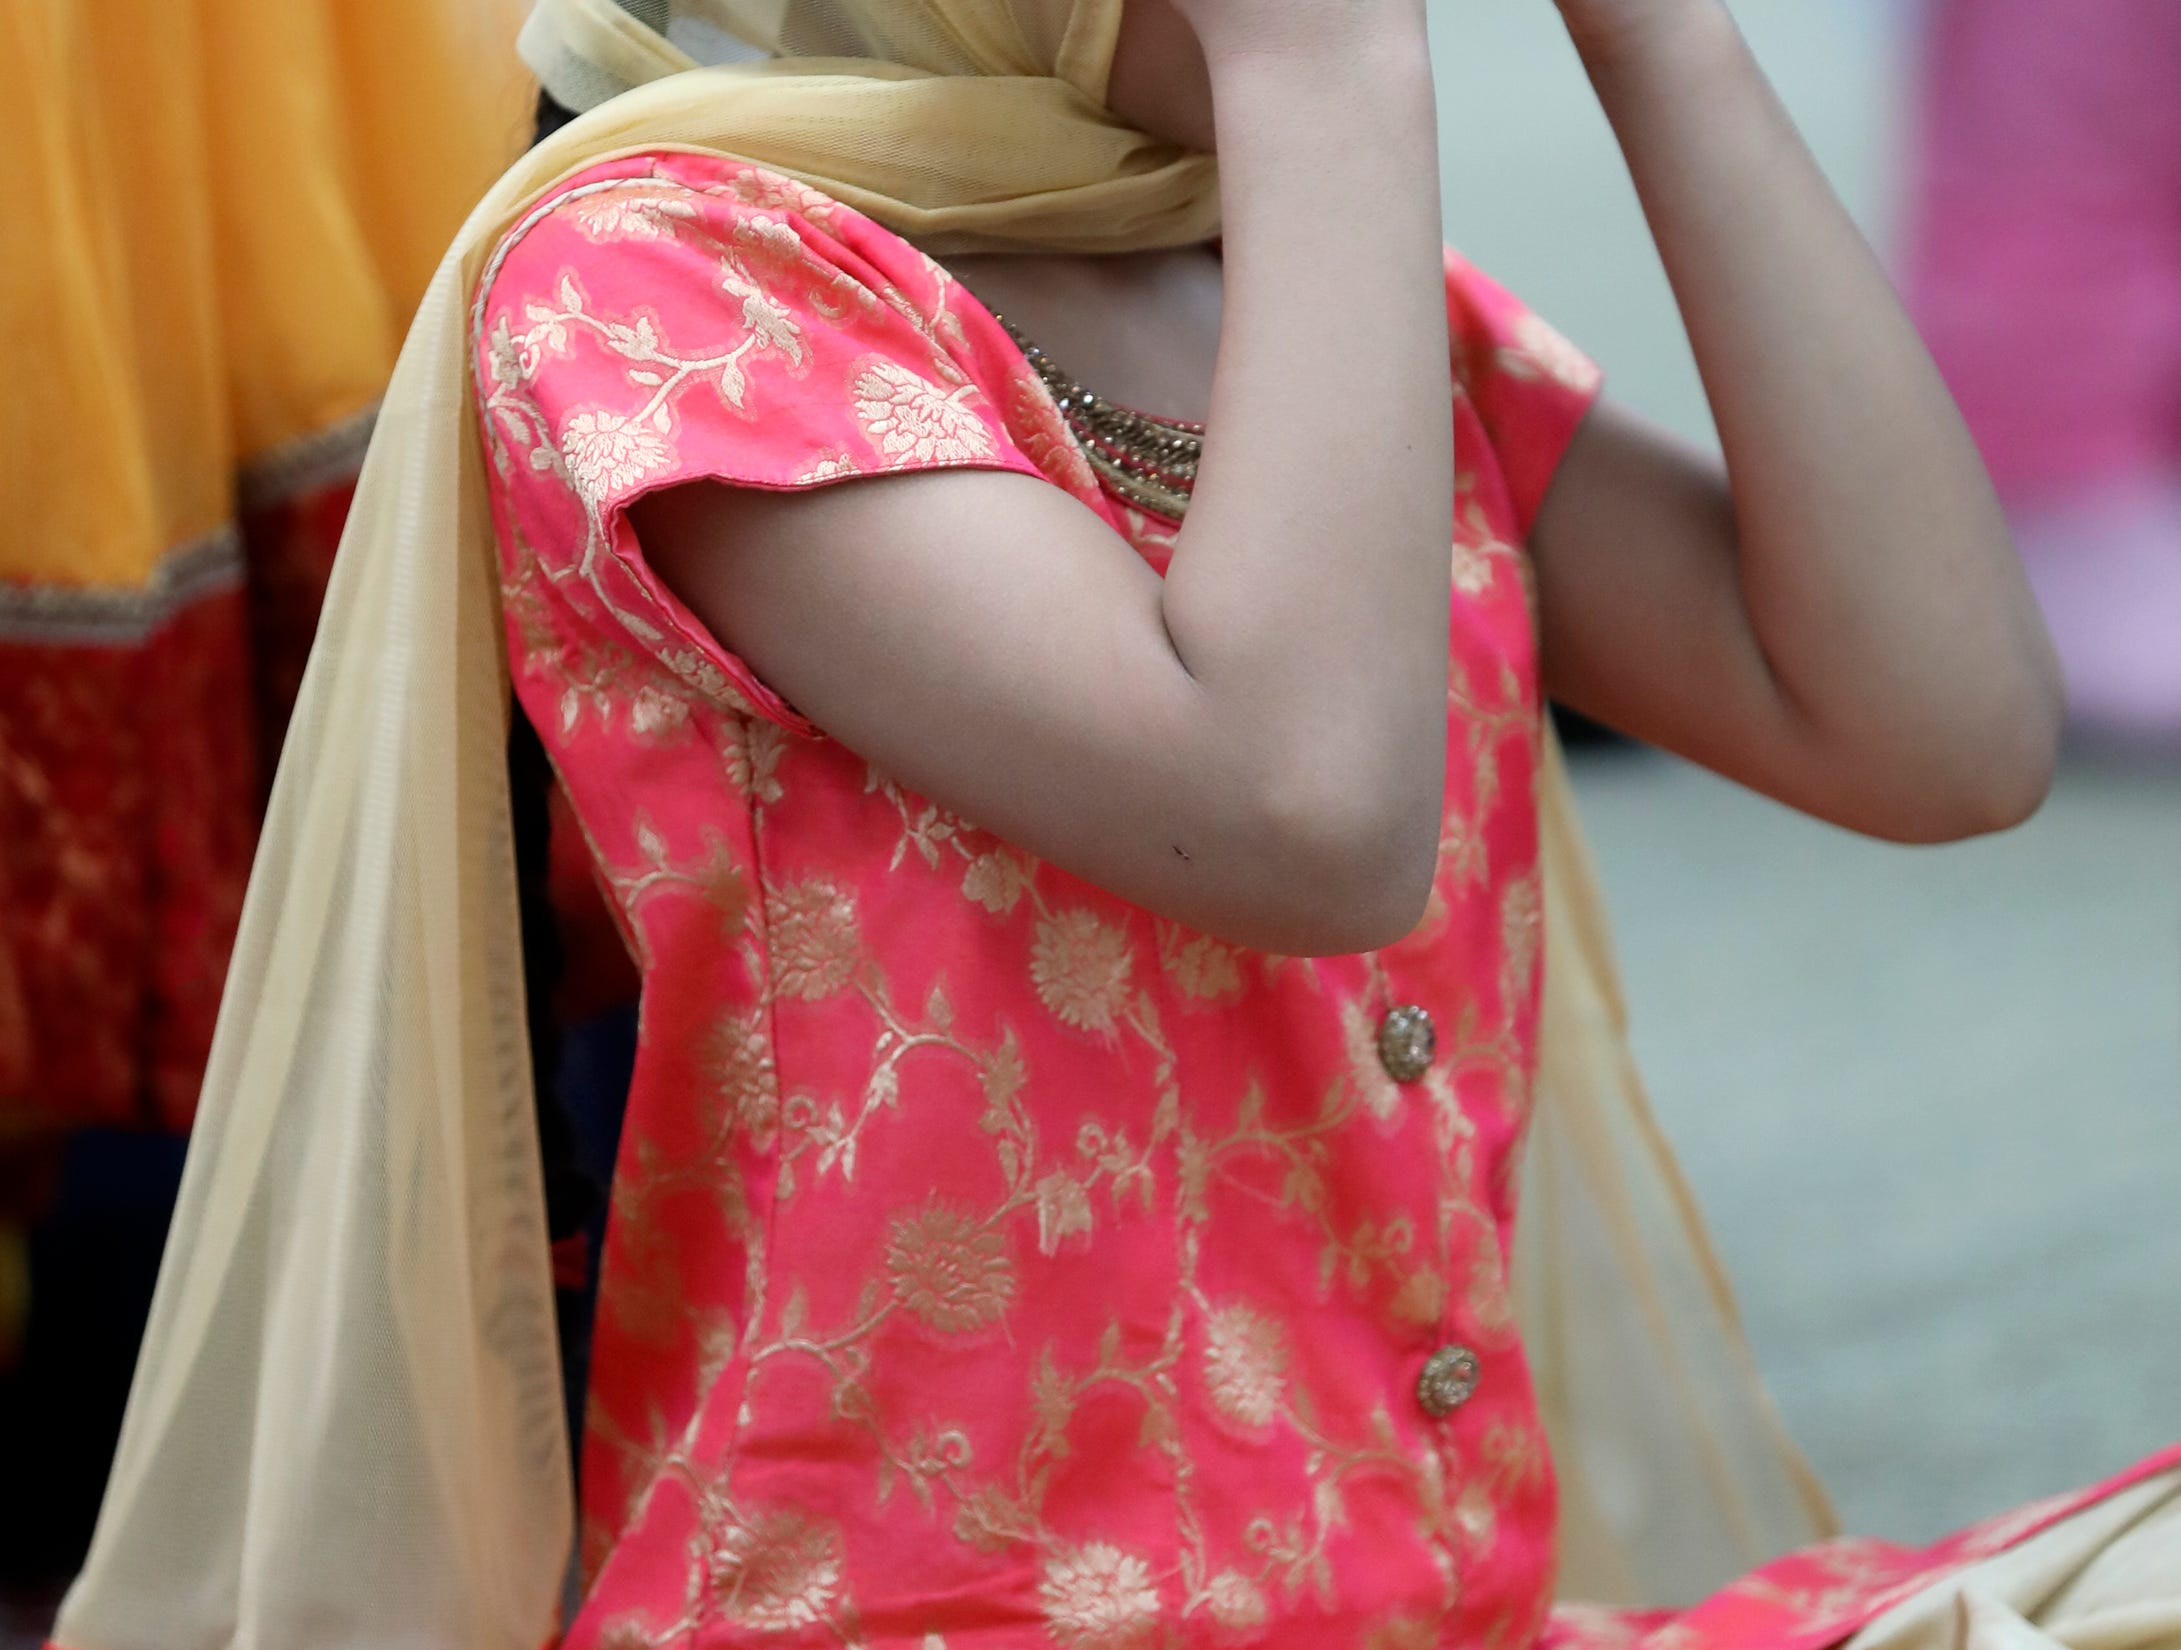 A girl places a head covering on at Guru Nanak Mission. Sunday, April, 14, 2019